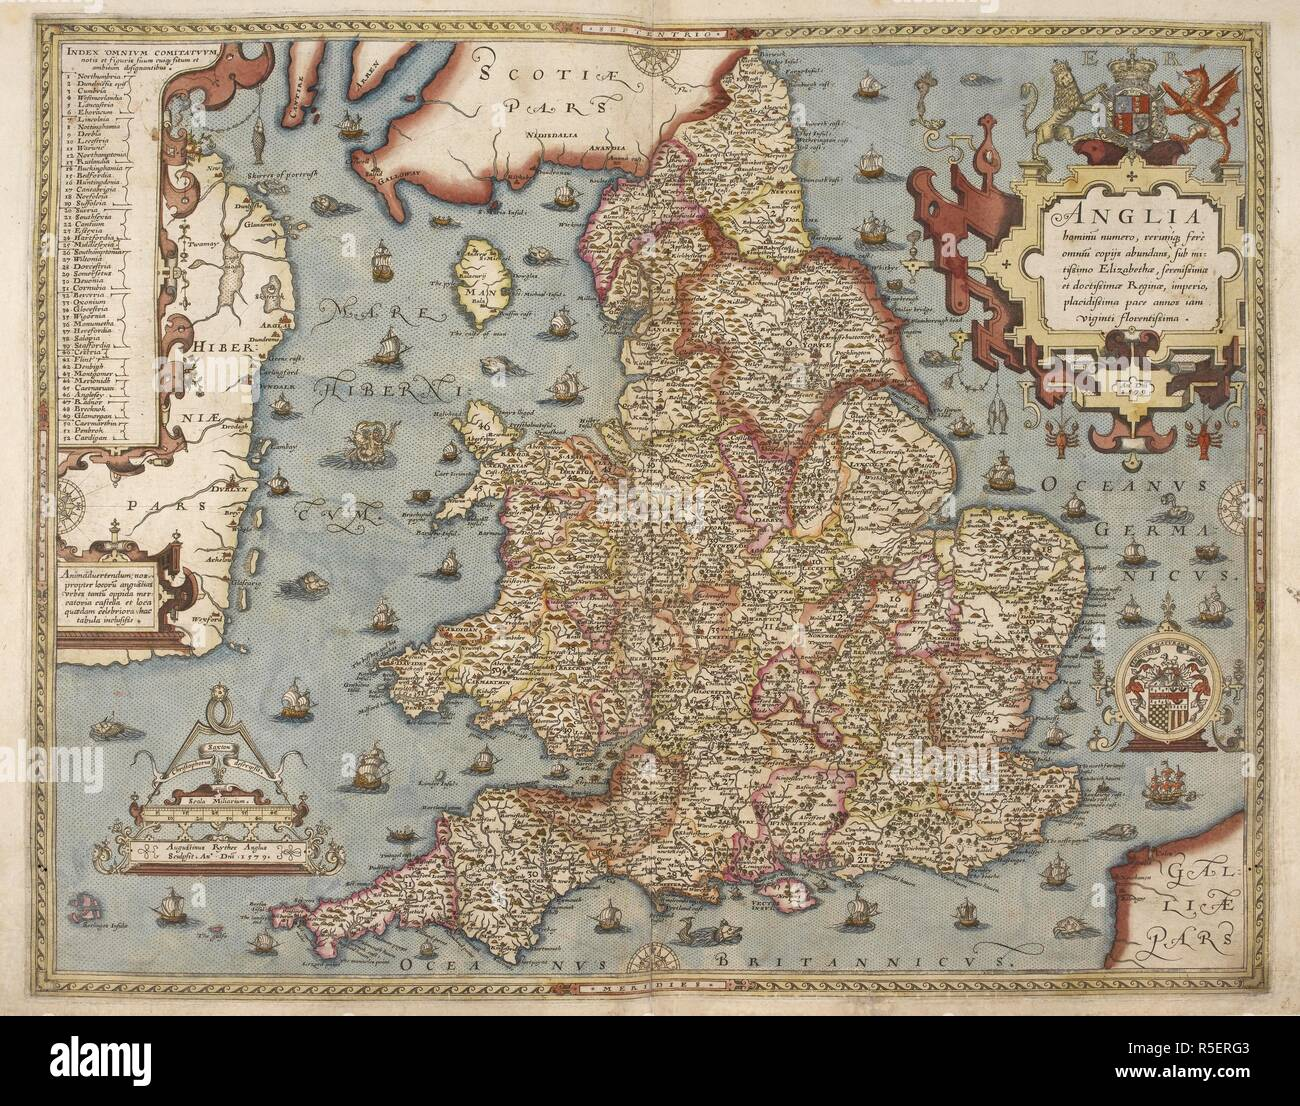 London Atlas Map.Saxton S Map Of England And Wales Lord Burghley S Atlas London